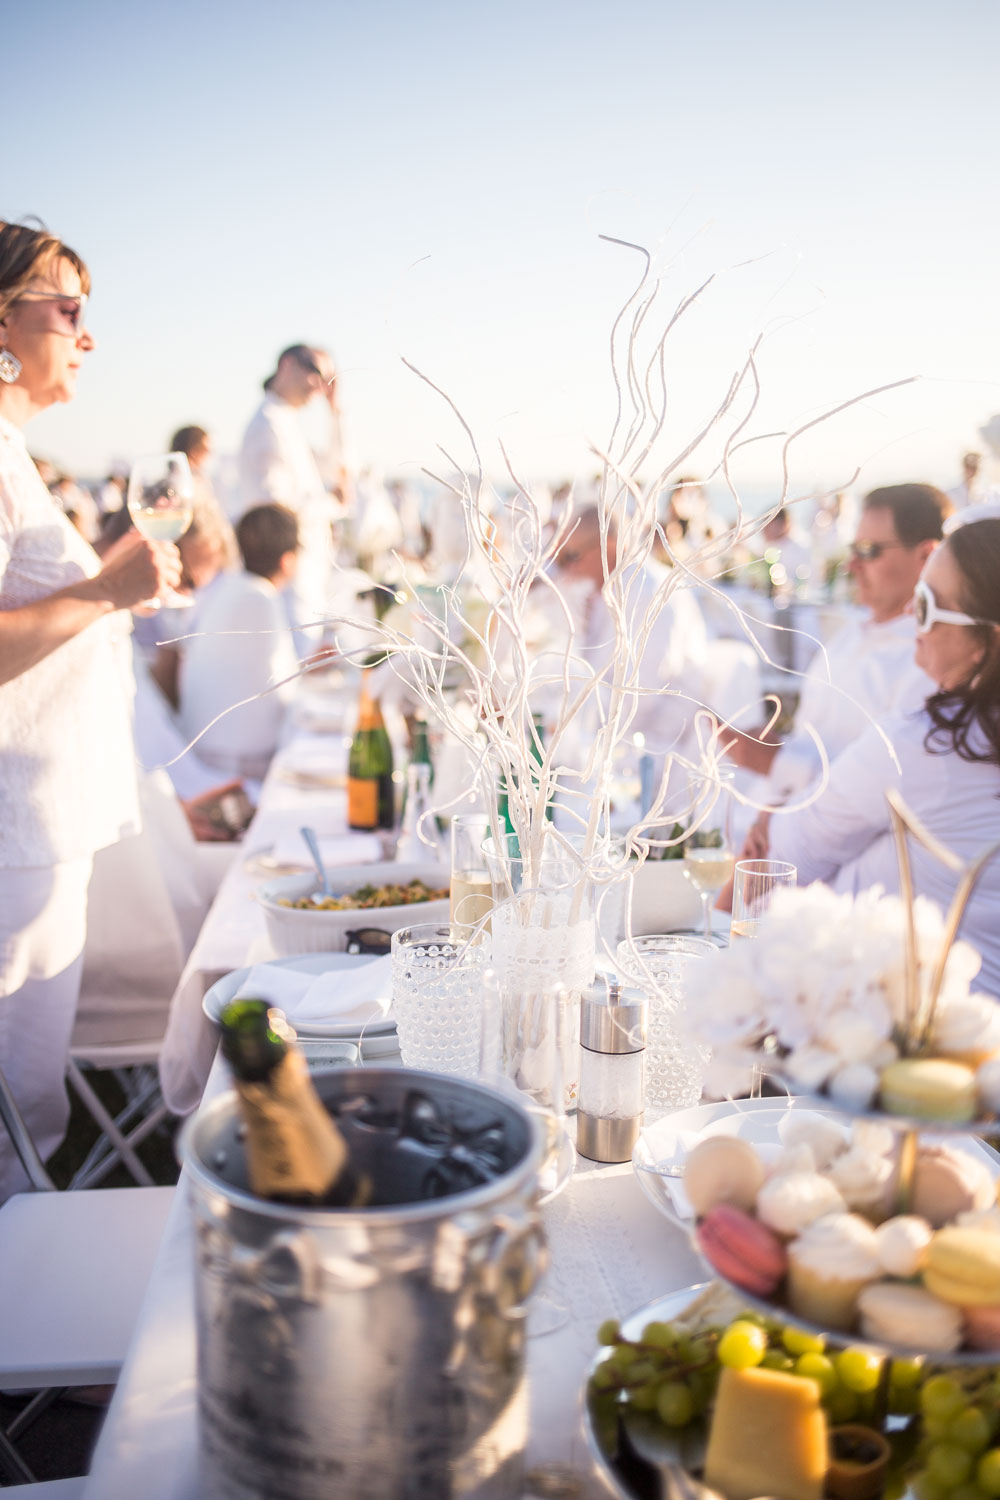 Le Diner en Blanc Table Decor // Hello Rigby Seattle Lifestyle Blog